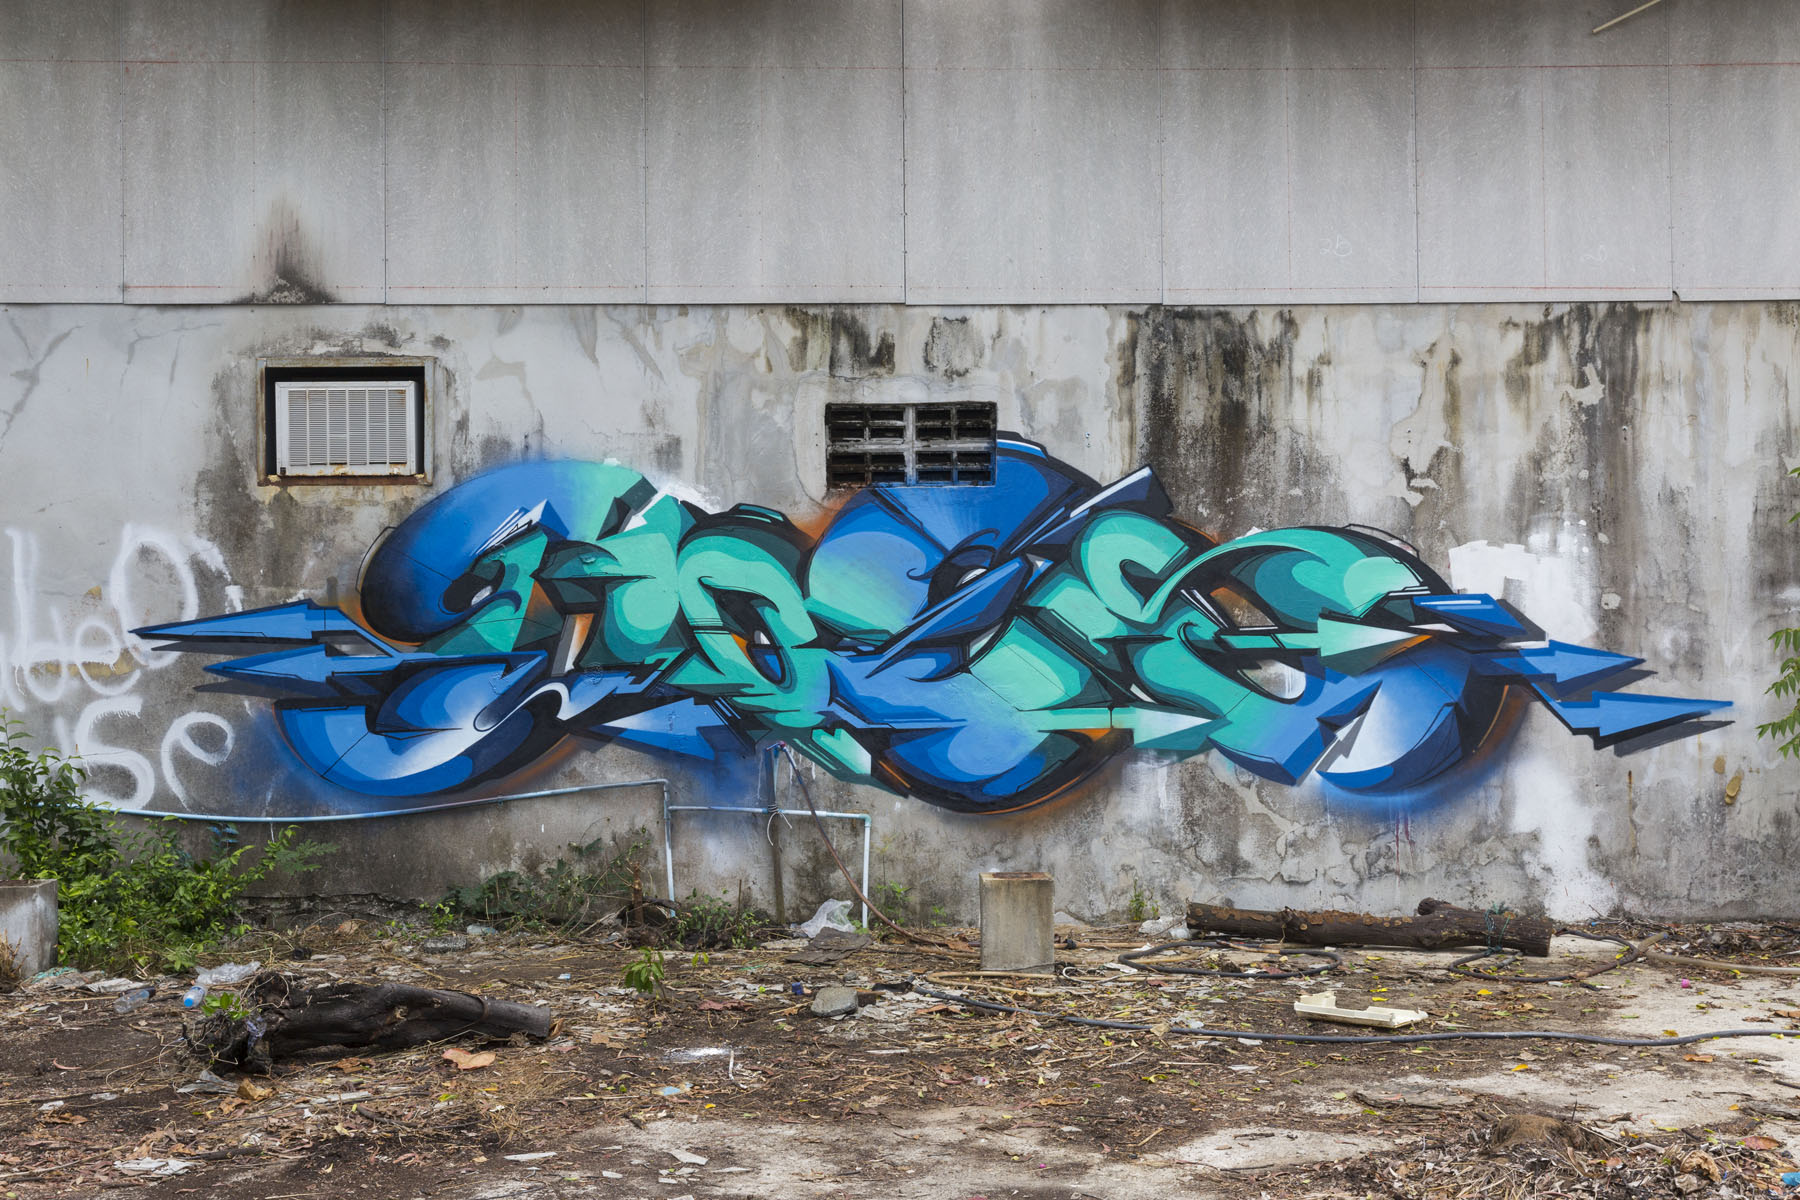 A work by Does - 201702-DOES-Ironlak-Thailand_LukeShirlaw_img_1610